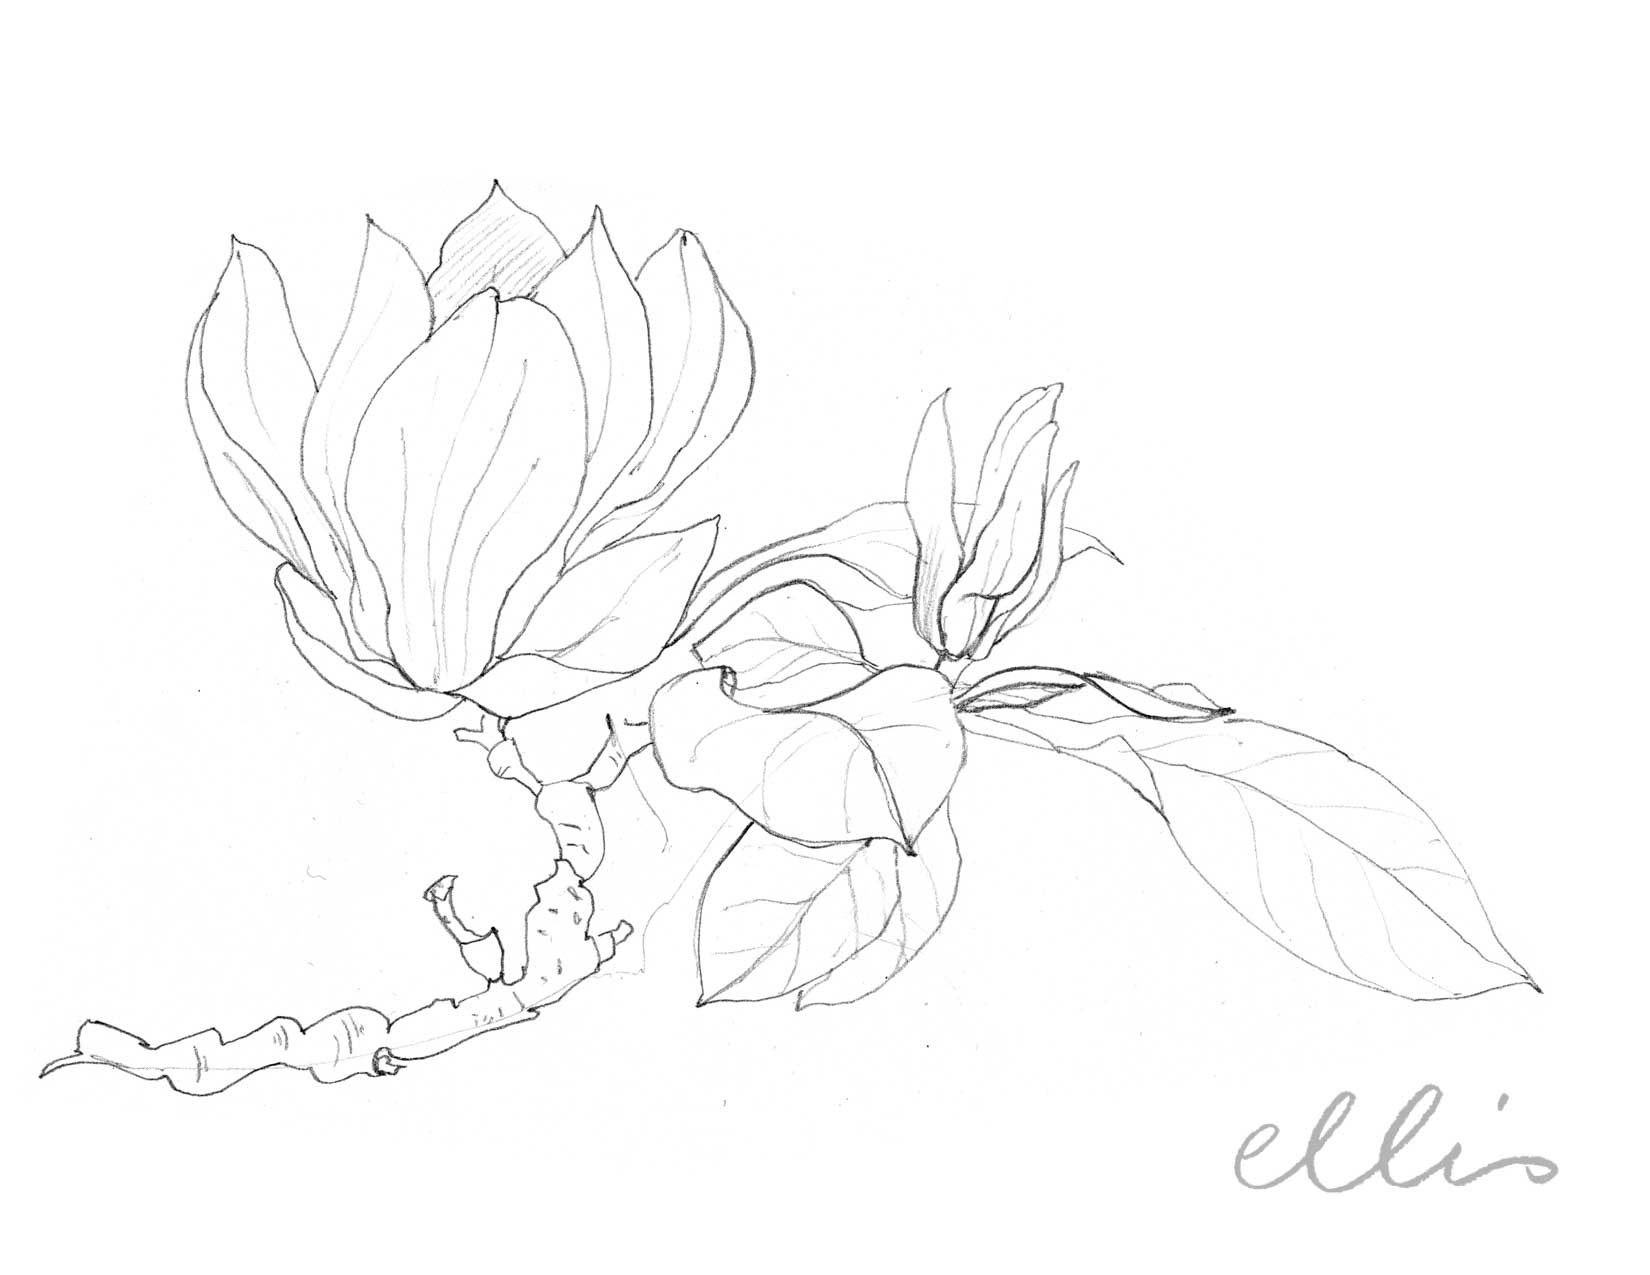 Erin Ellis_100 days project botanical drawings_2013-94.jpg